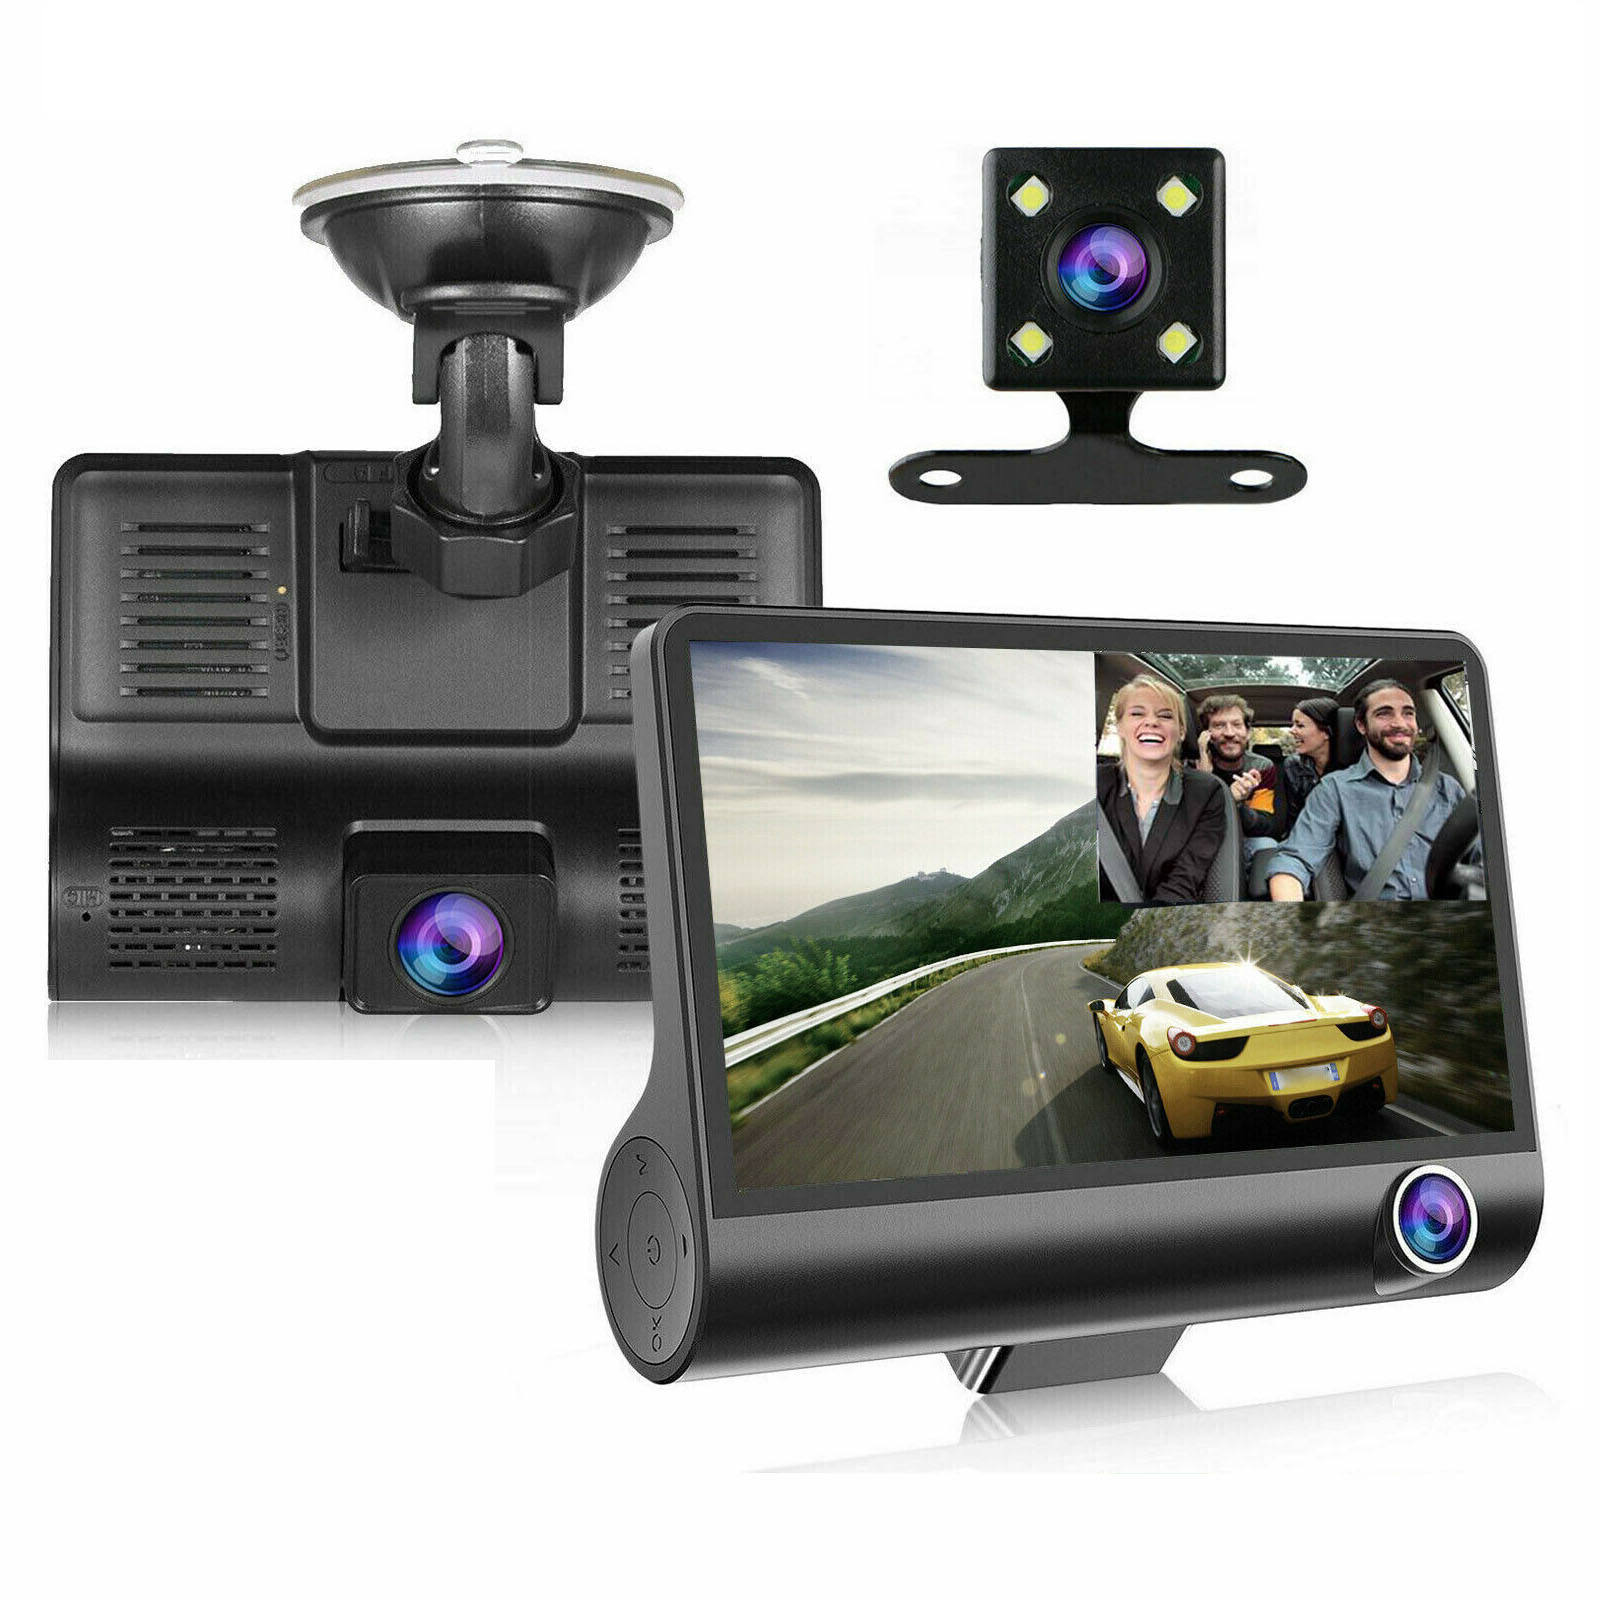 Small Dash Cam 3 Dashboard Camera Recorder 4 Inch Screen Video DVR 3 Ways HD Car Black Box Rearview Car DVR Driving Recorder